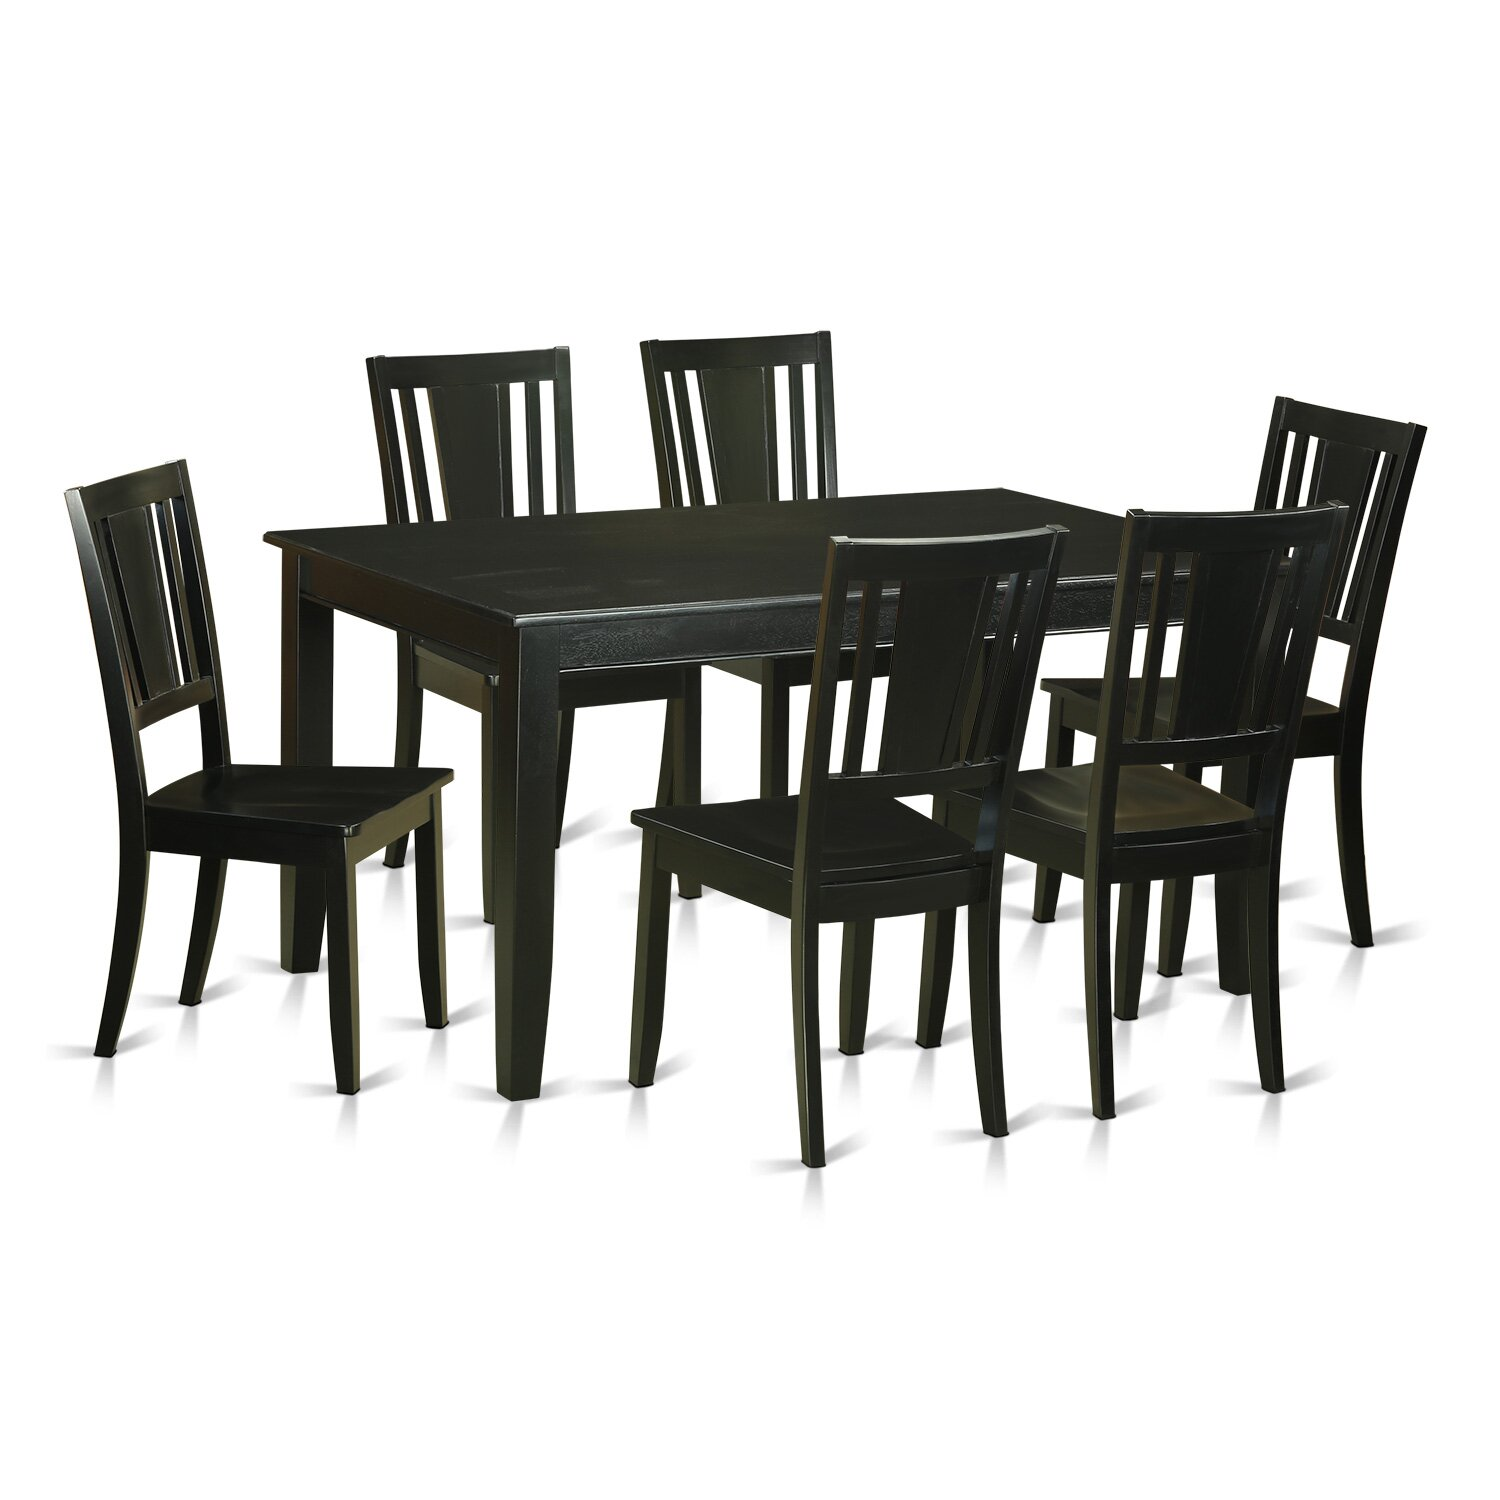 Wooden importers dudley 7 piece dining set reviews wayfair for Kitchen set 7 in 1